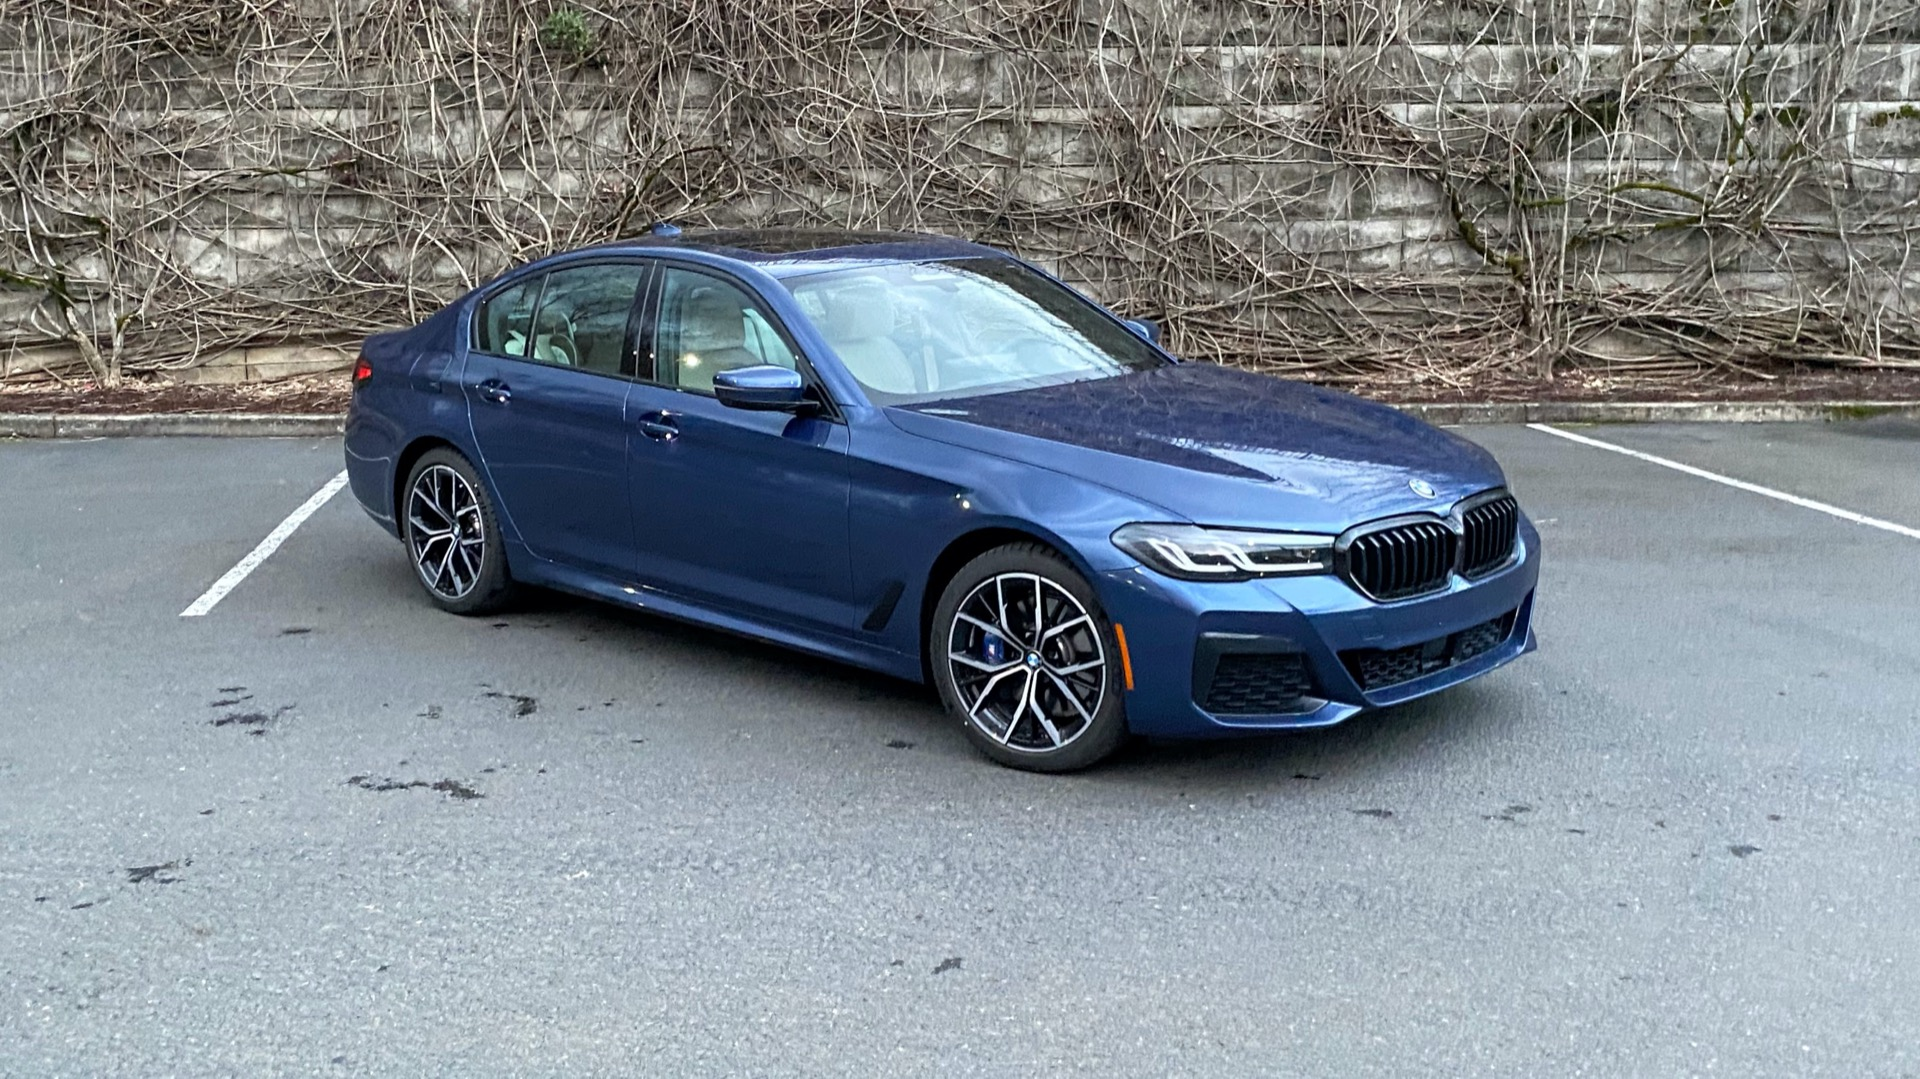 2021 BMW 530e earns its hybrid halo, misses the mark as a plug-in